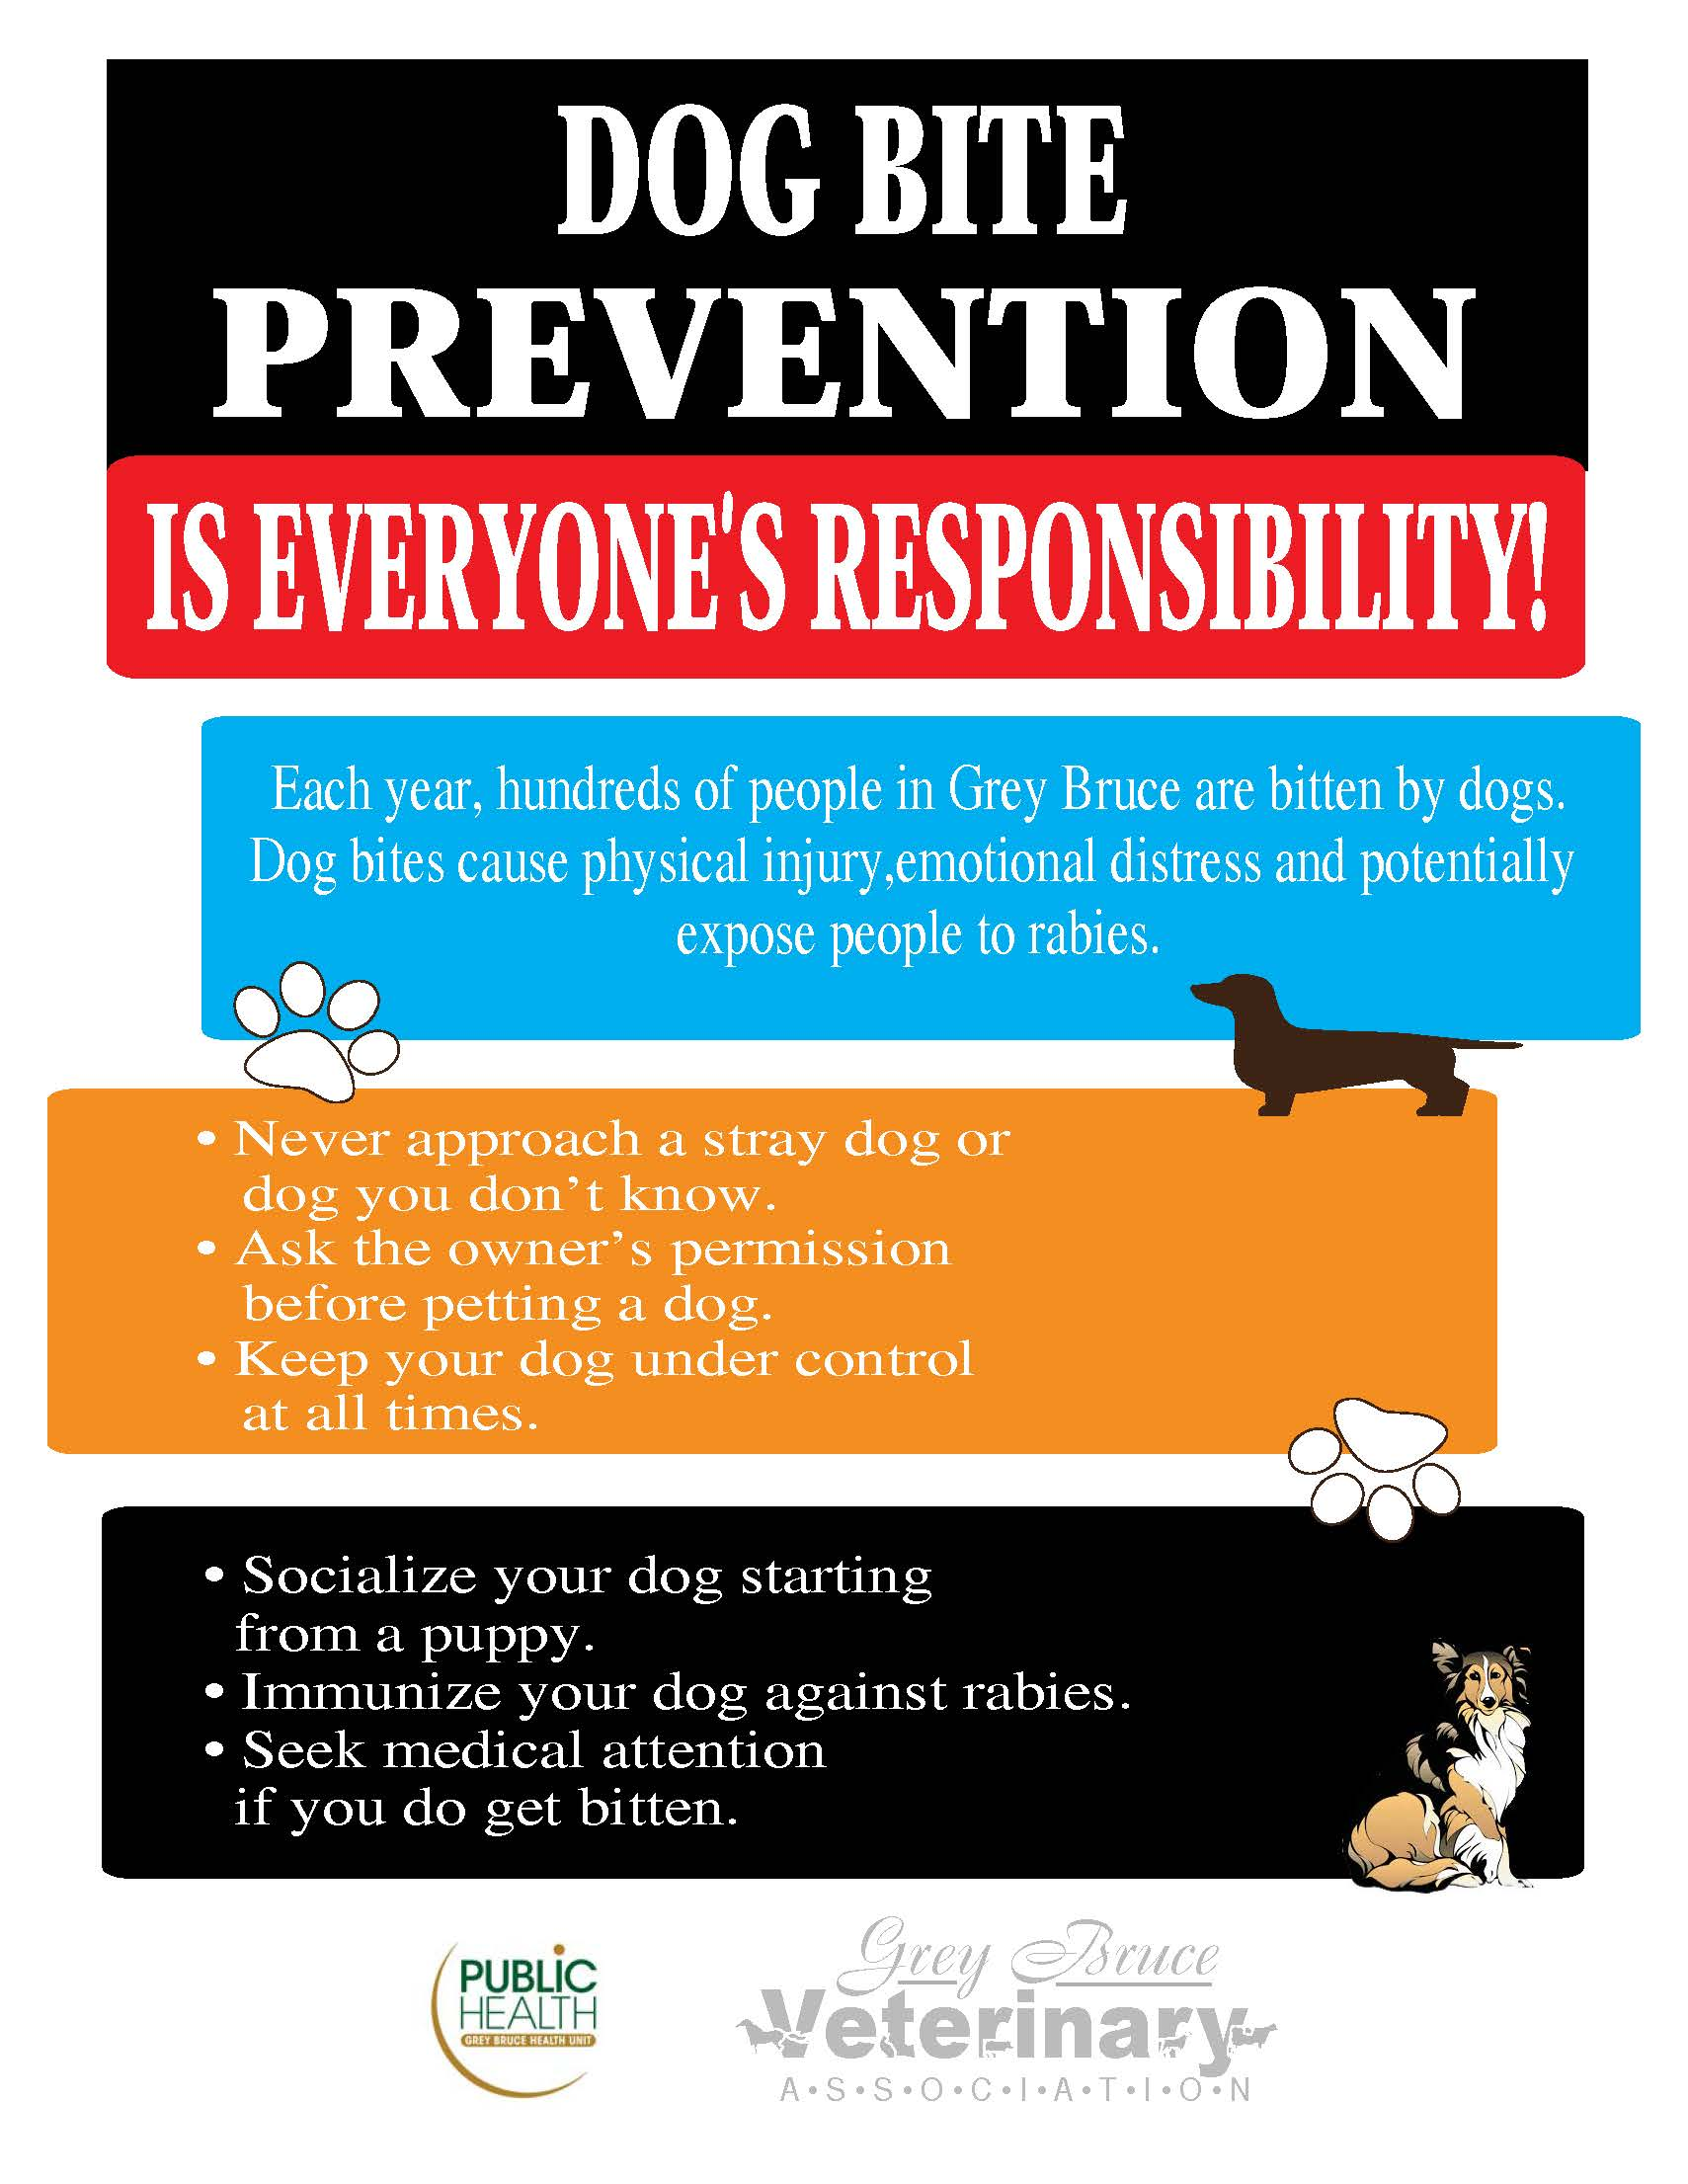 Dog Bite Prevention campaign poster